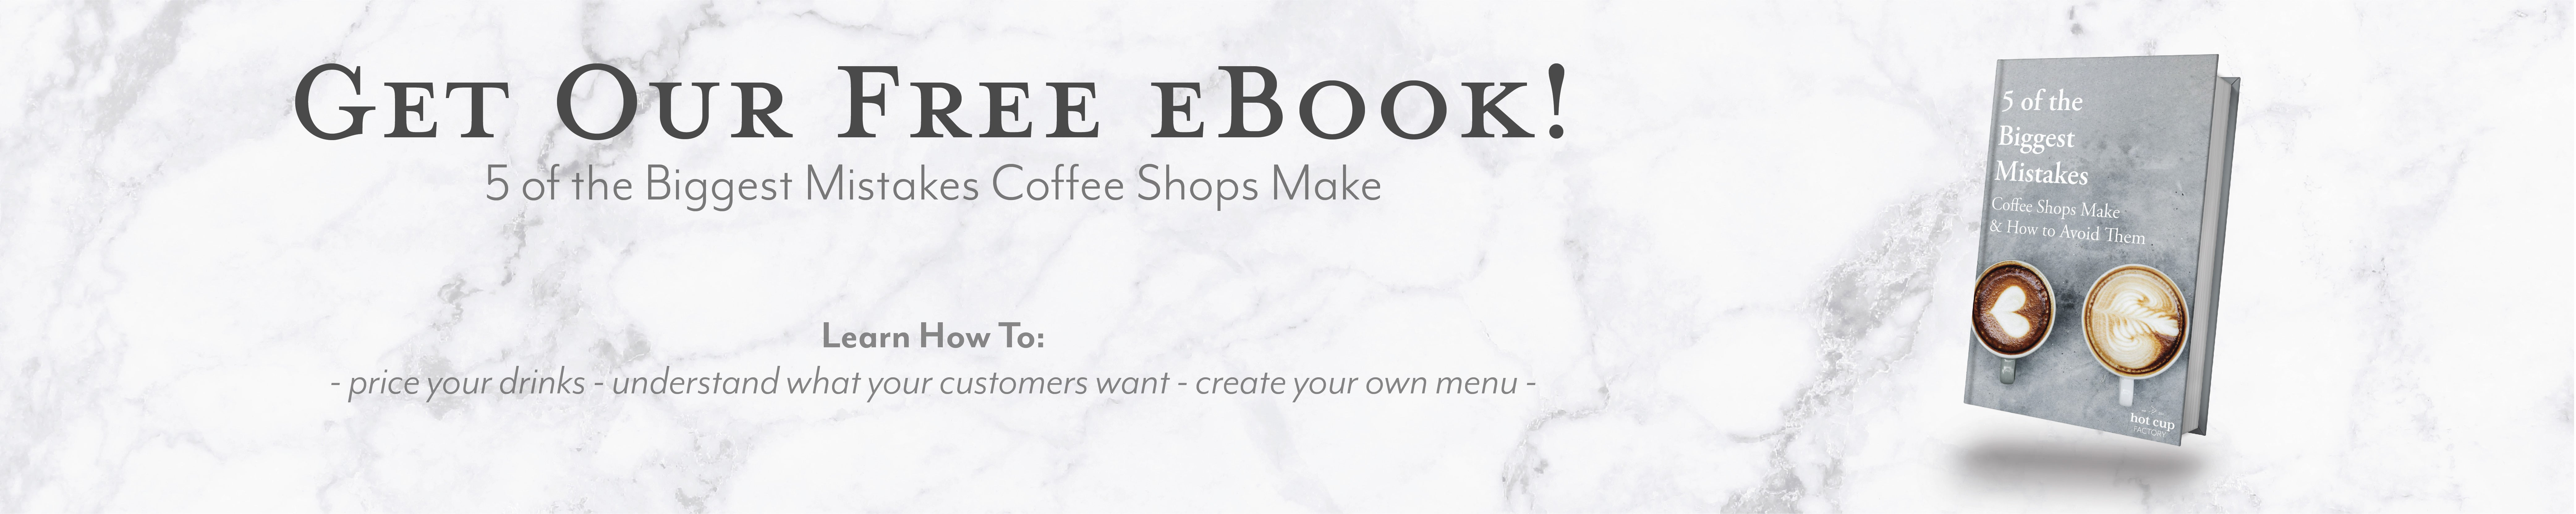 Free Ebook, All the Coffee Shop Supplies You Need to Start Your Cafe